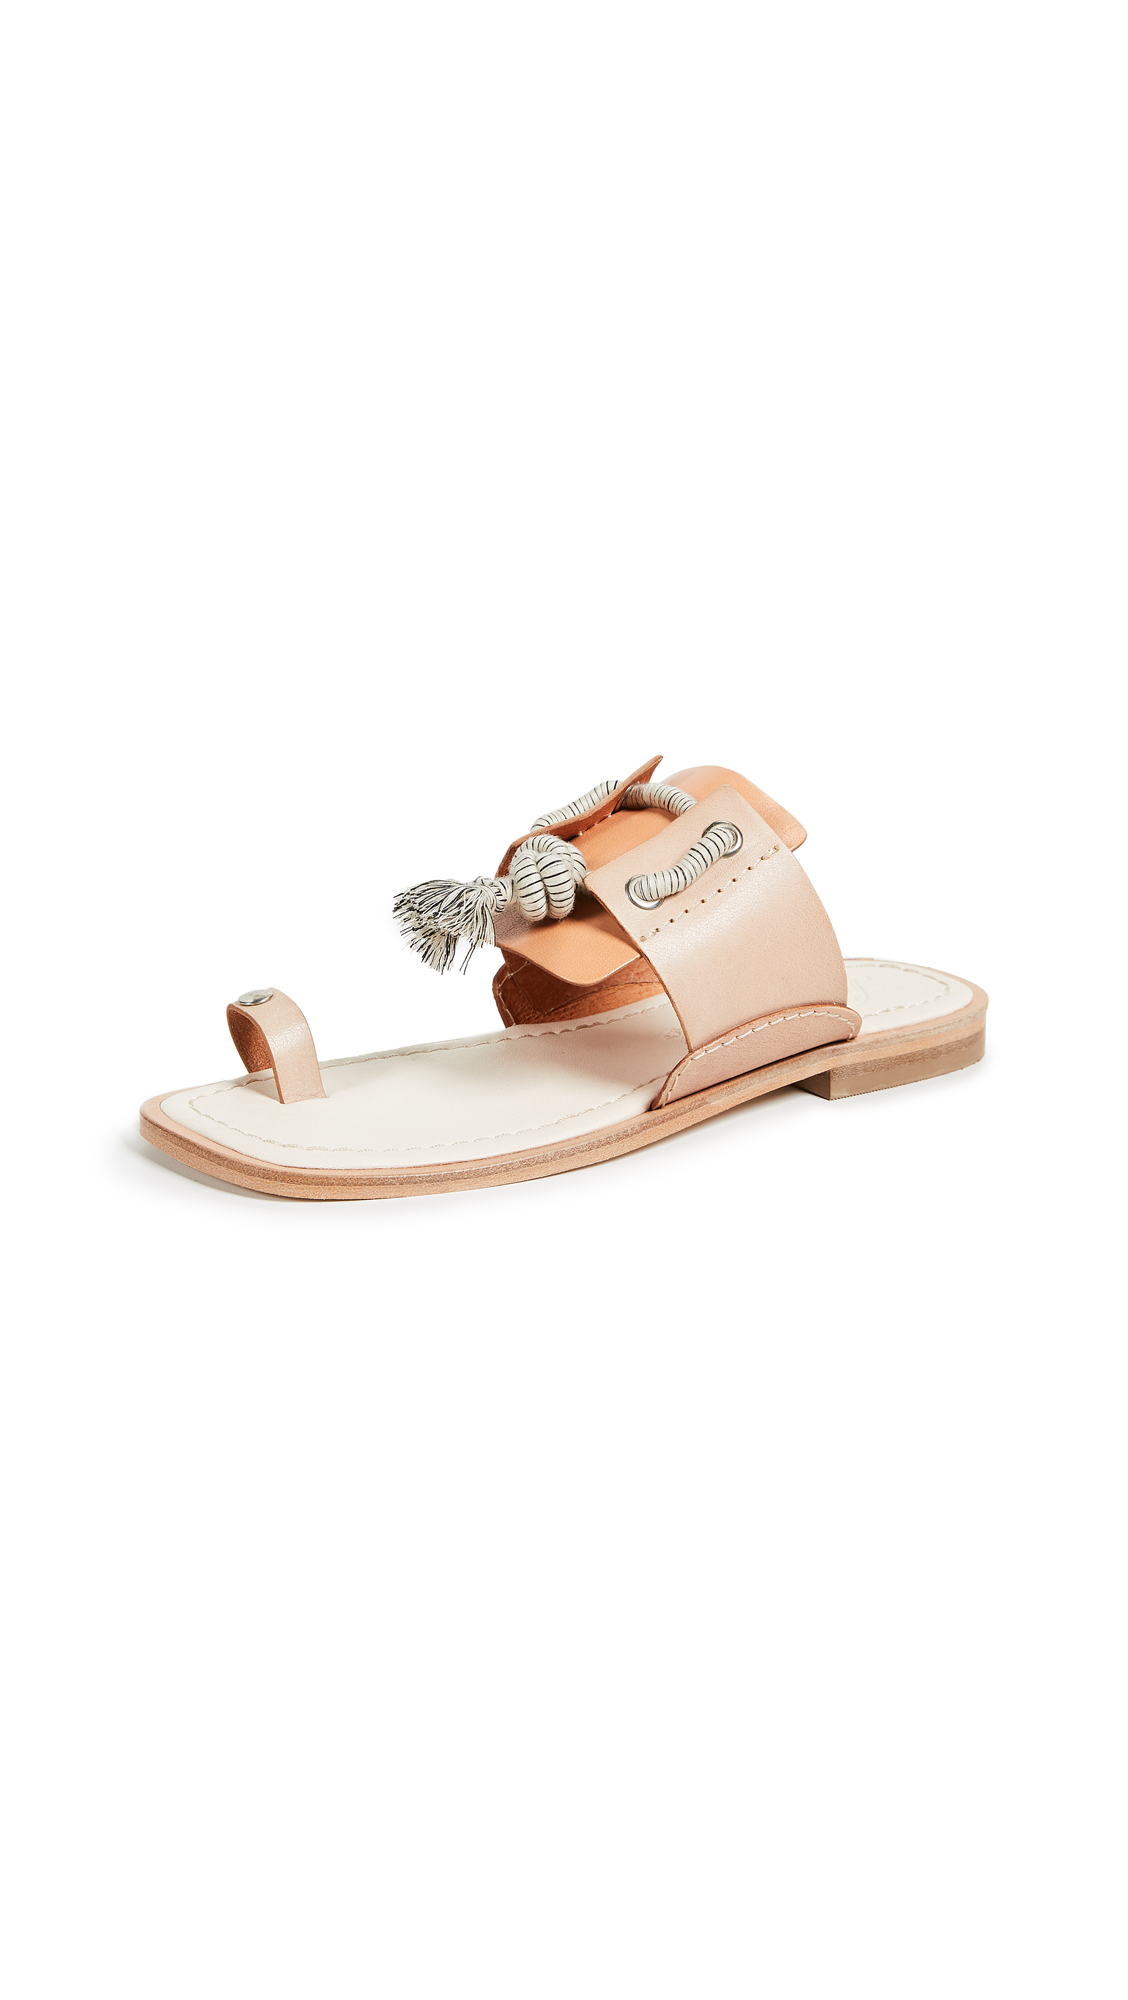 Free People Maui Slide Sandals